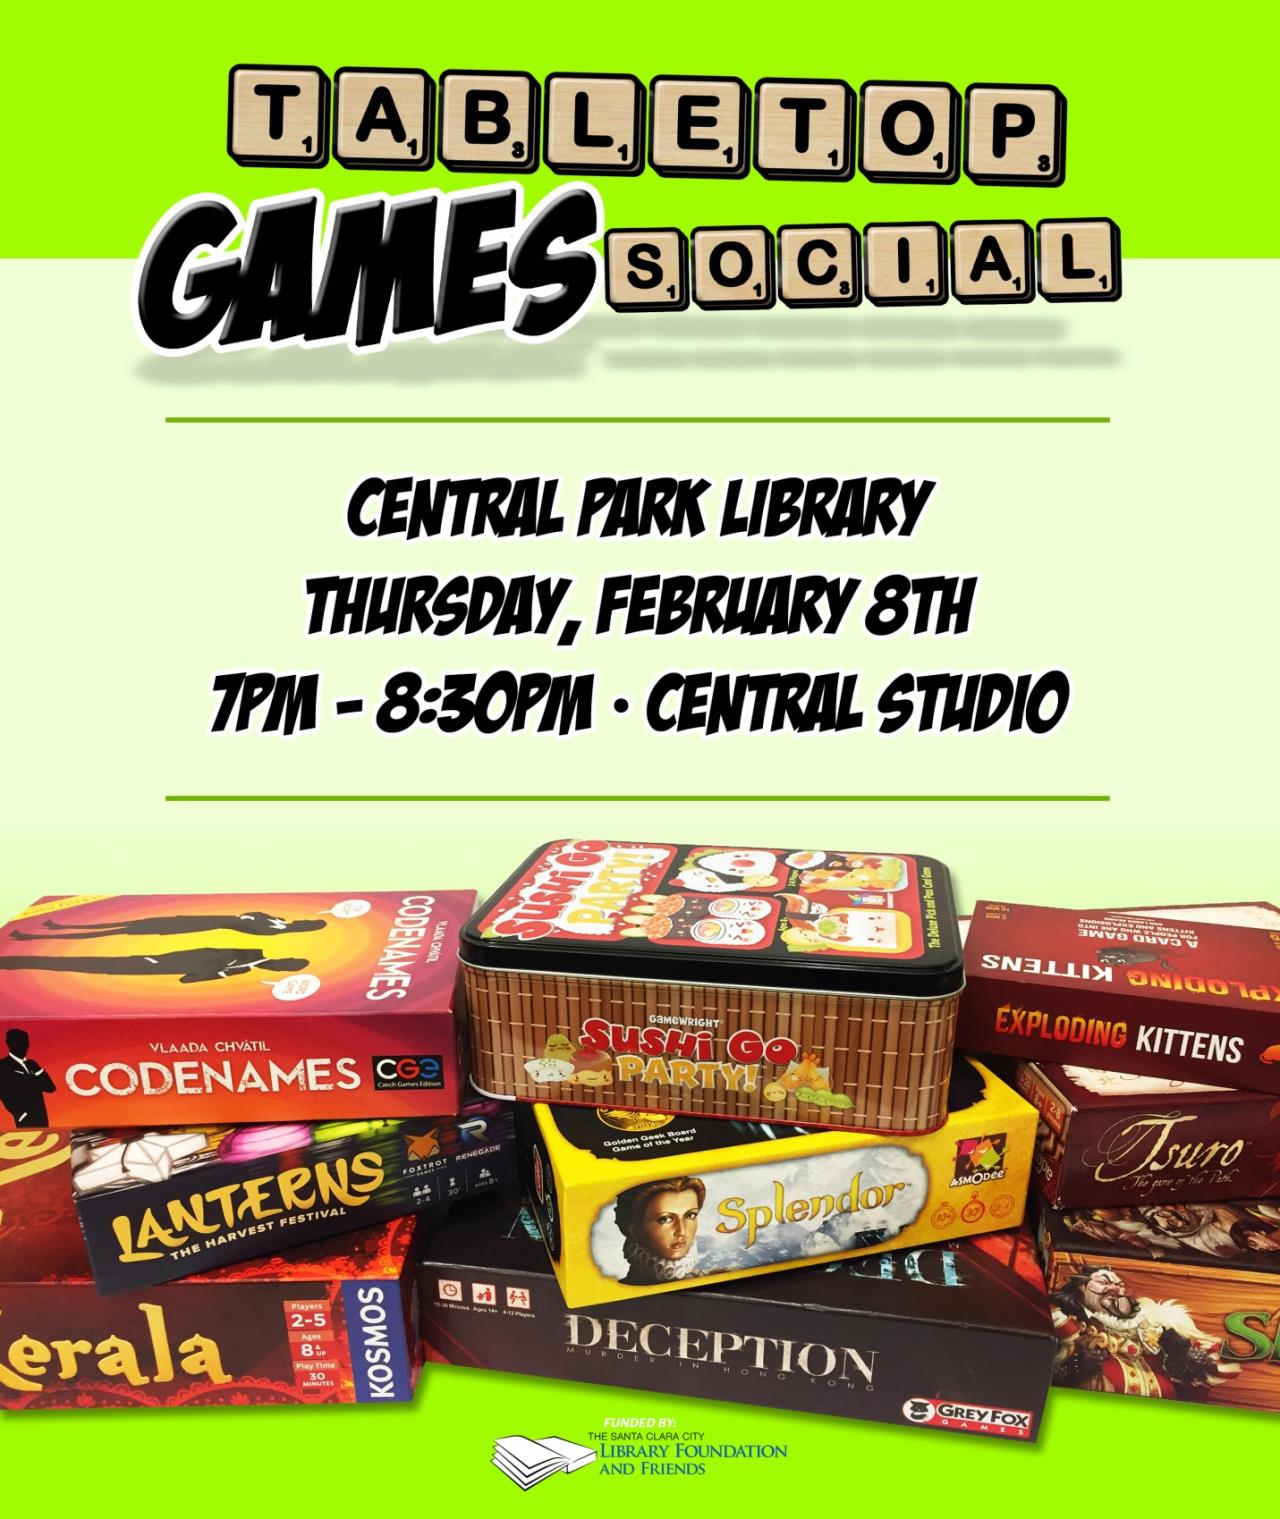 Tabletop Games Social, Central park library, thursday, February 8th, 7PM to 8PM, central studio. picture of board game boxes